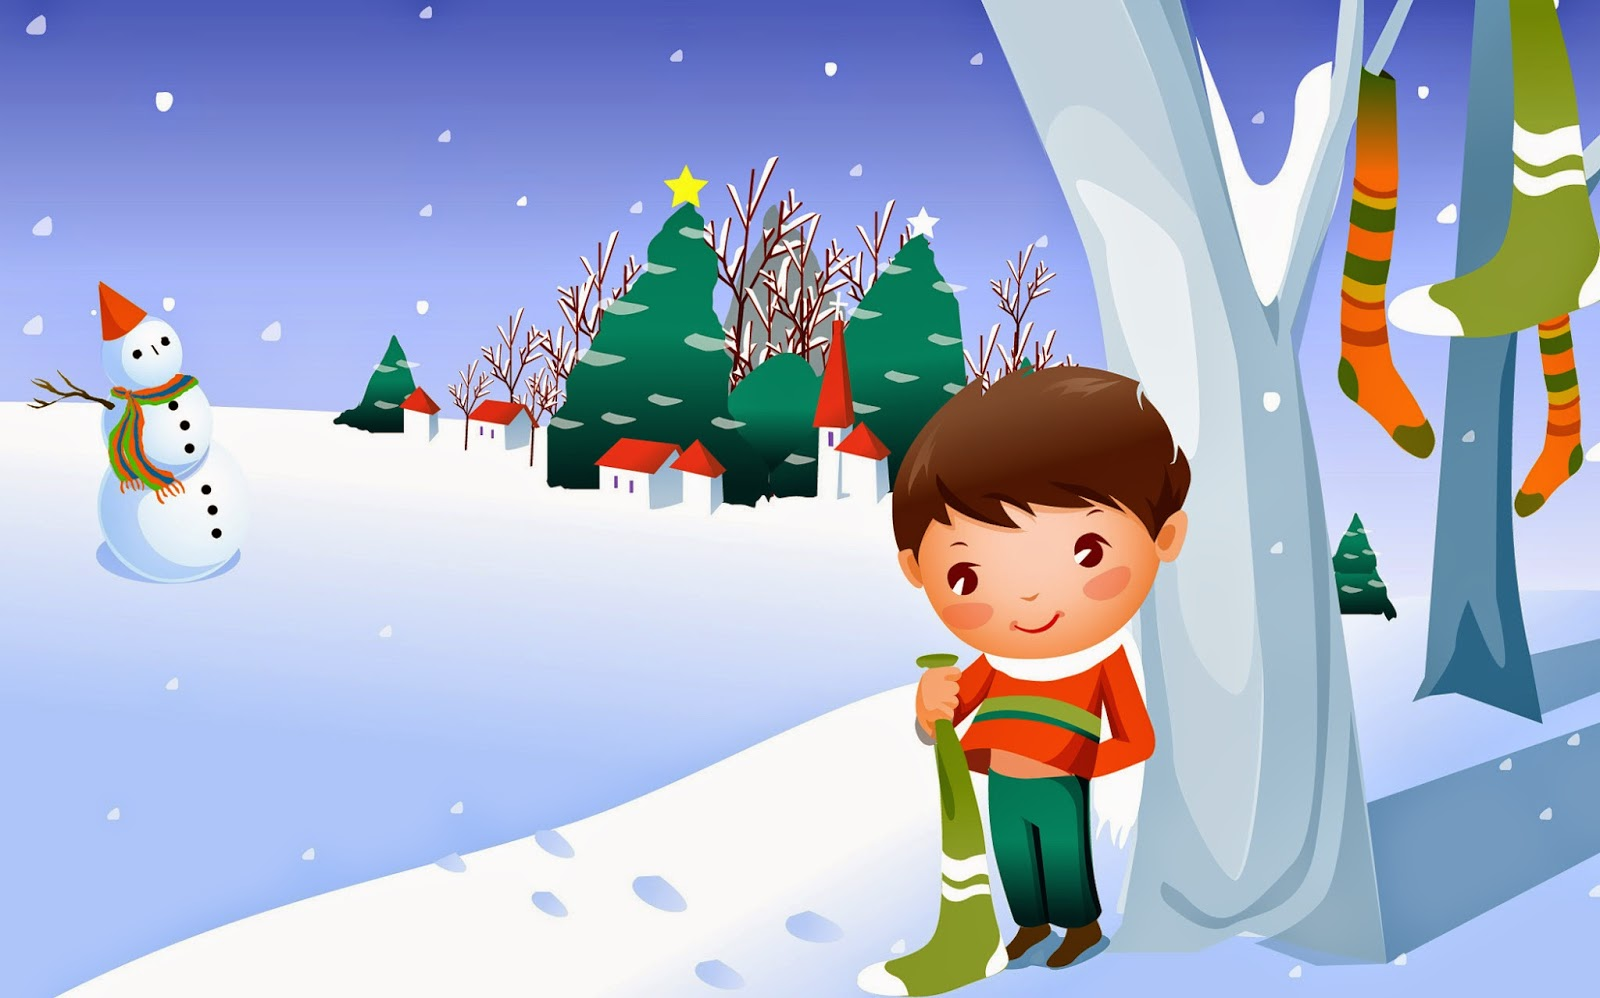 Christmas-time-kid-with-snowman-doll-cartoon-drawing-image-for-kids-and-children-story-time.jpg